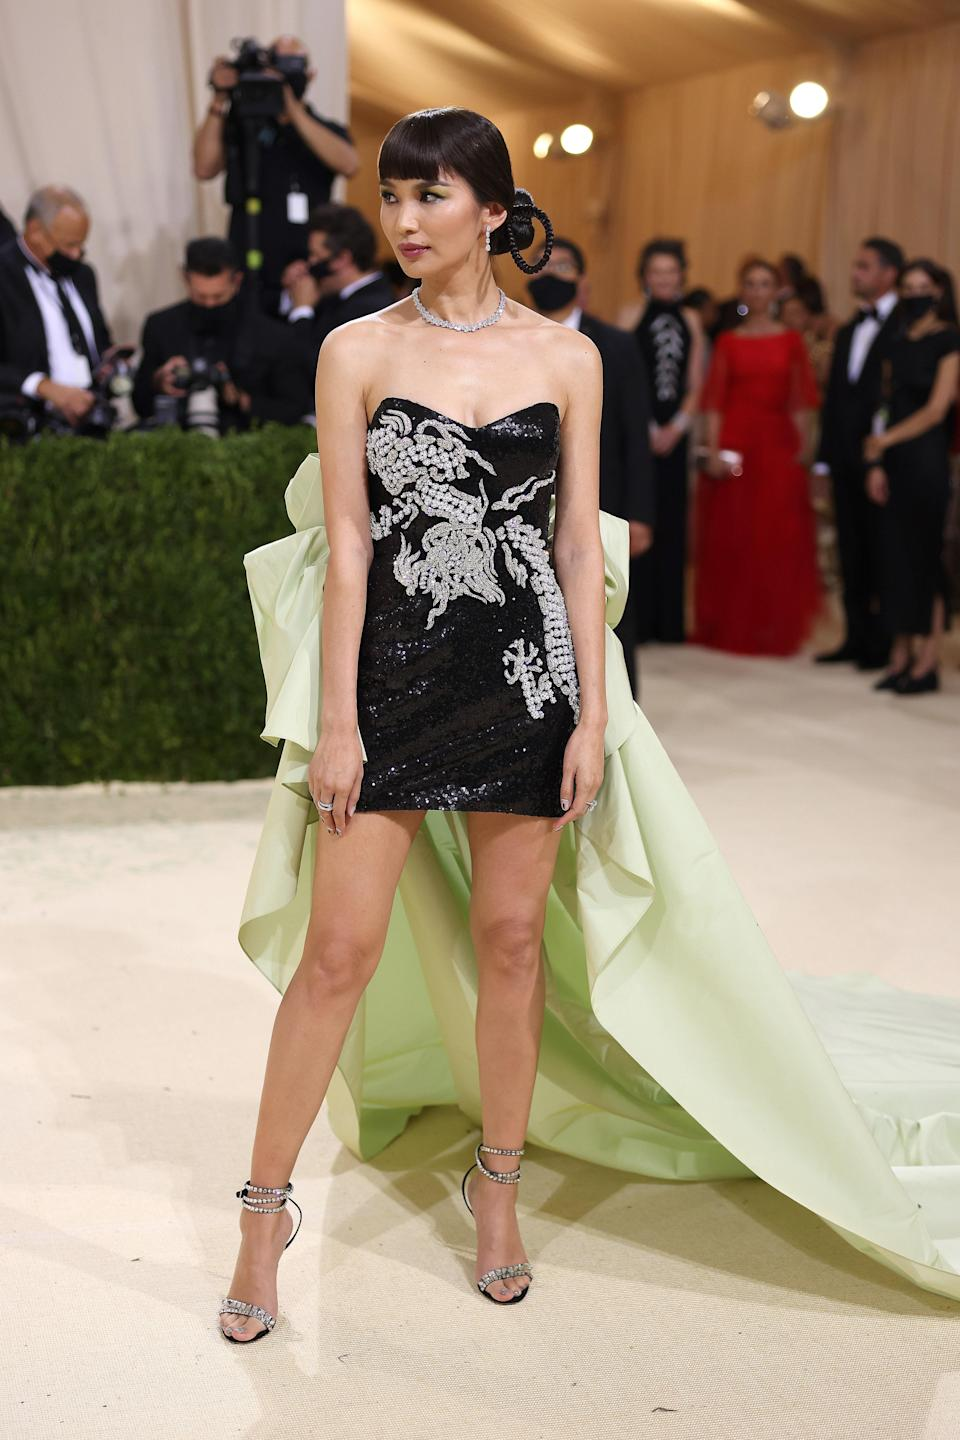 Actor Gemma Chan's Prabal Gurung gown paid homage to Chinese-American actor Anna May Wong. She was a trailblazer and one of the first Asian American stars in Hollywood's golden era.